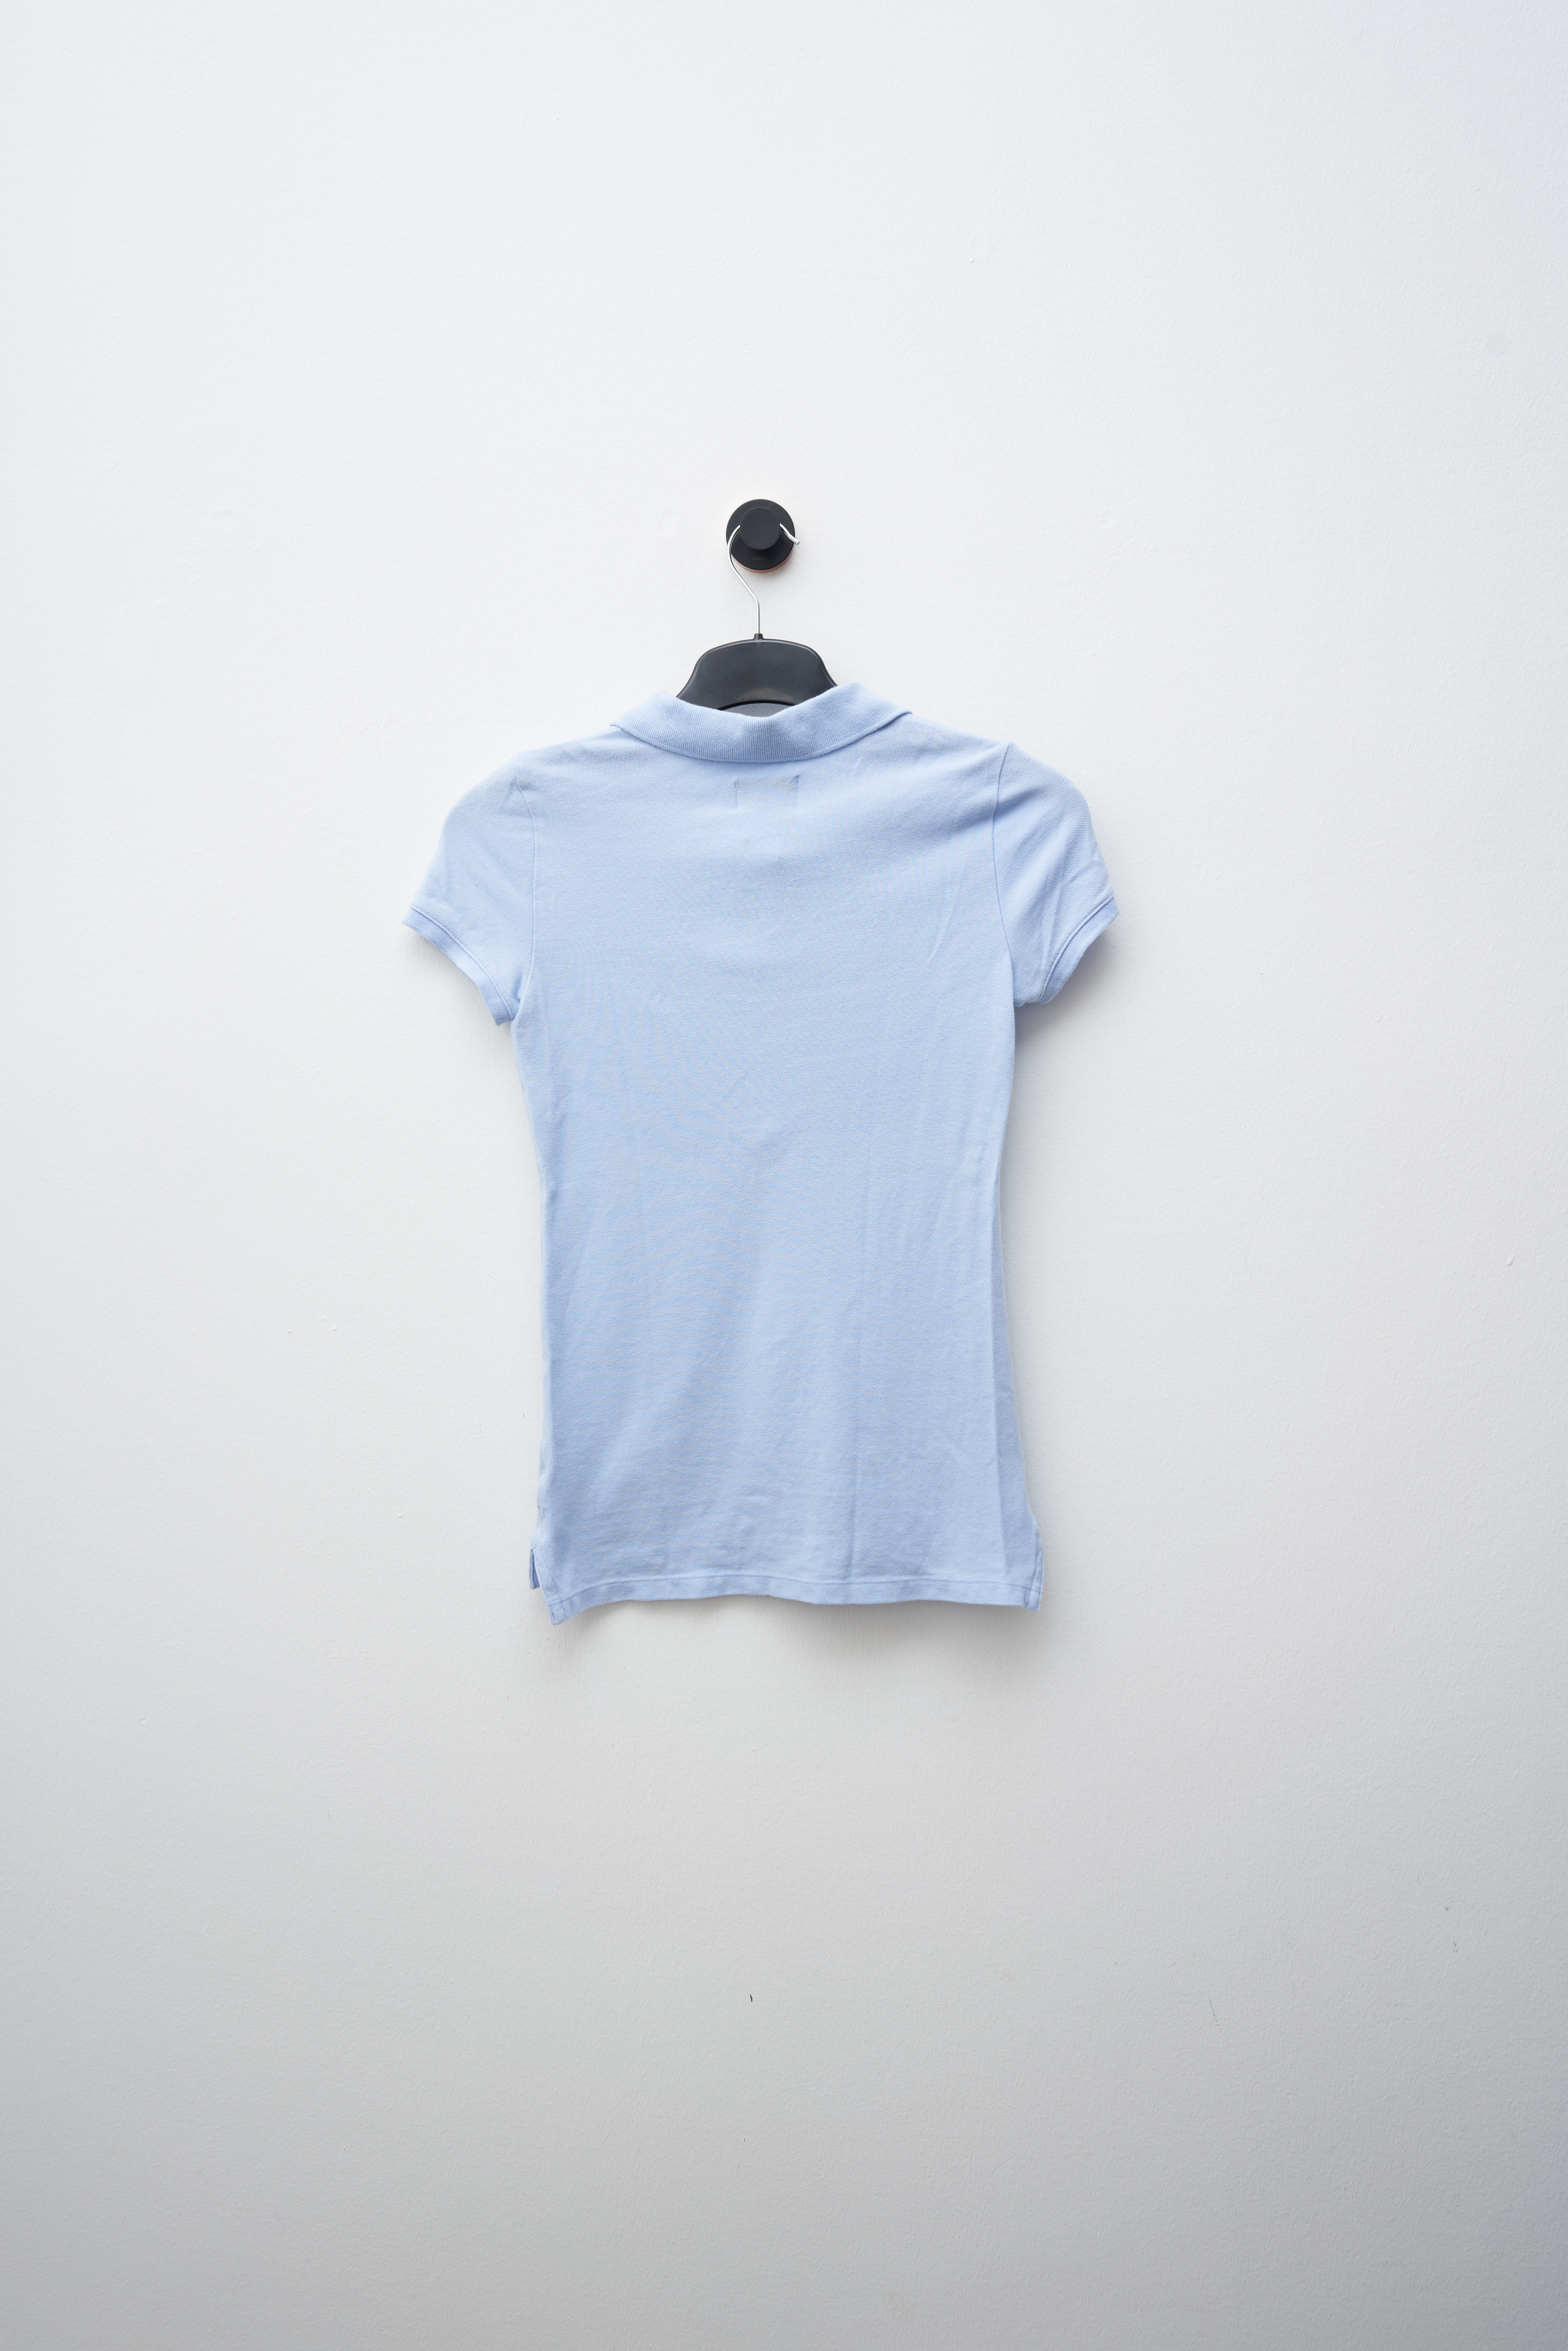 American Eagle Outfitters T-Shirt Blau Gr.XS